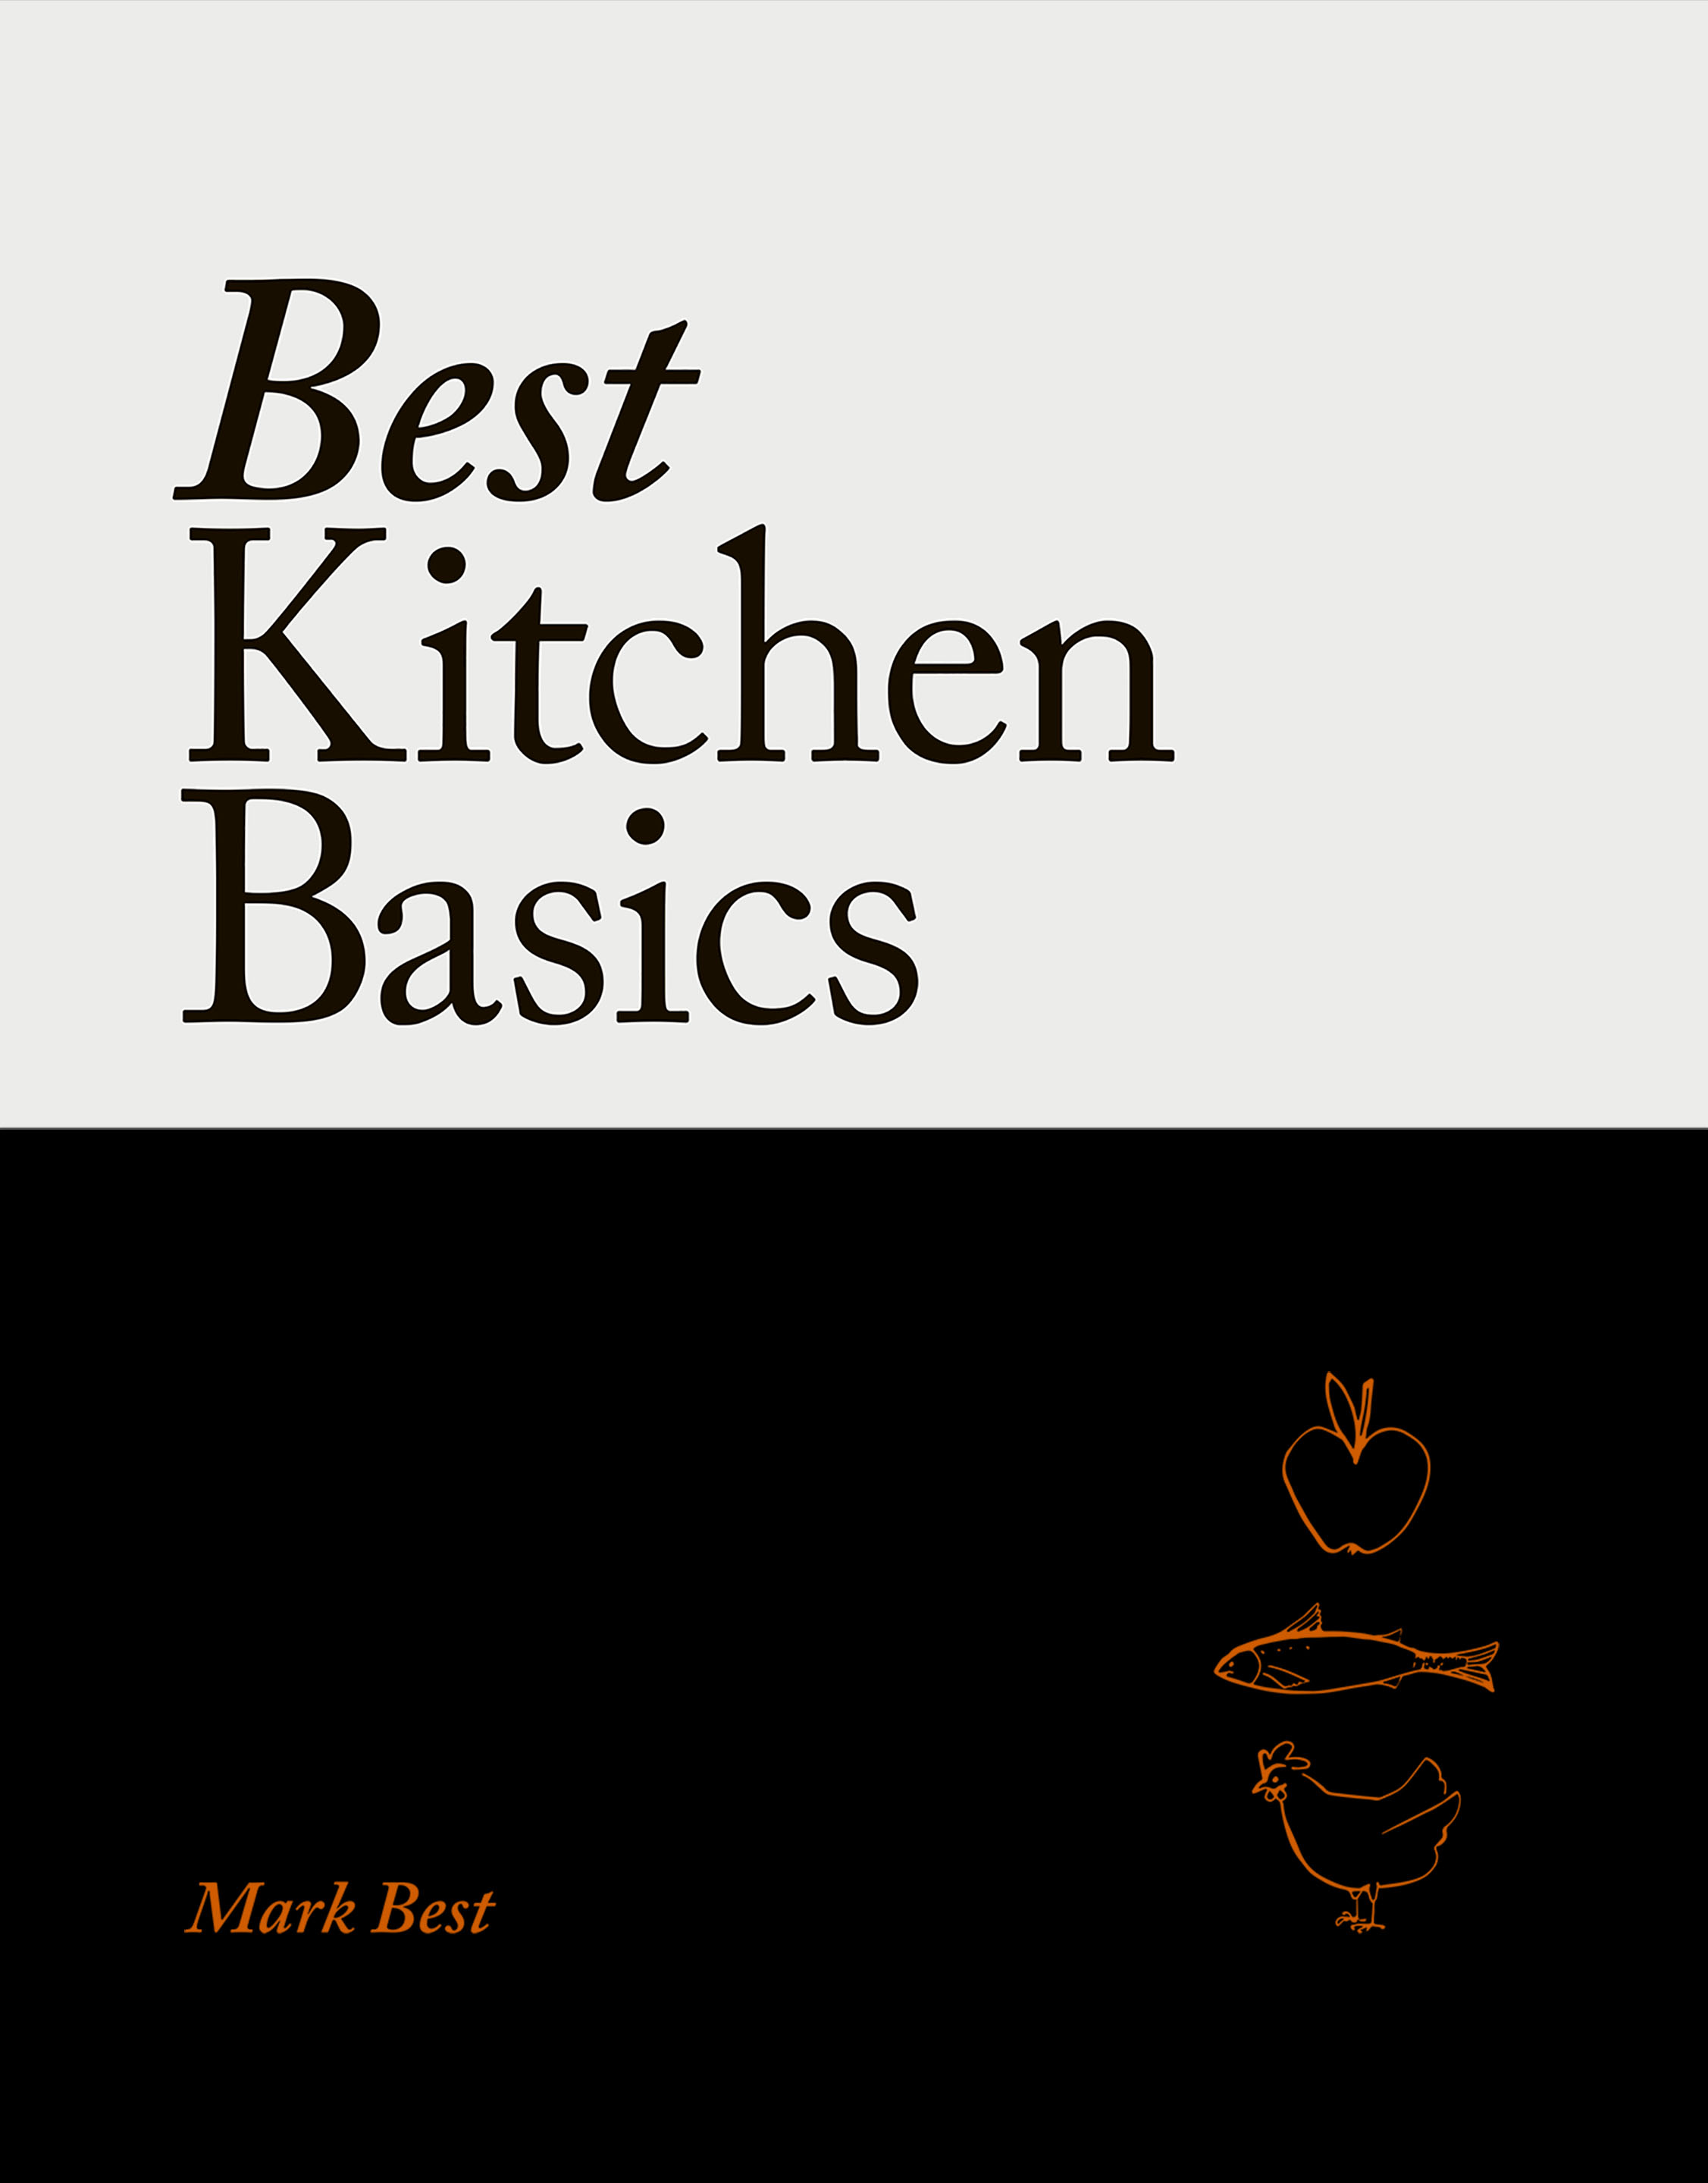 Best Kitchen Basics